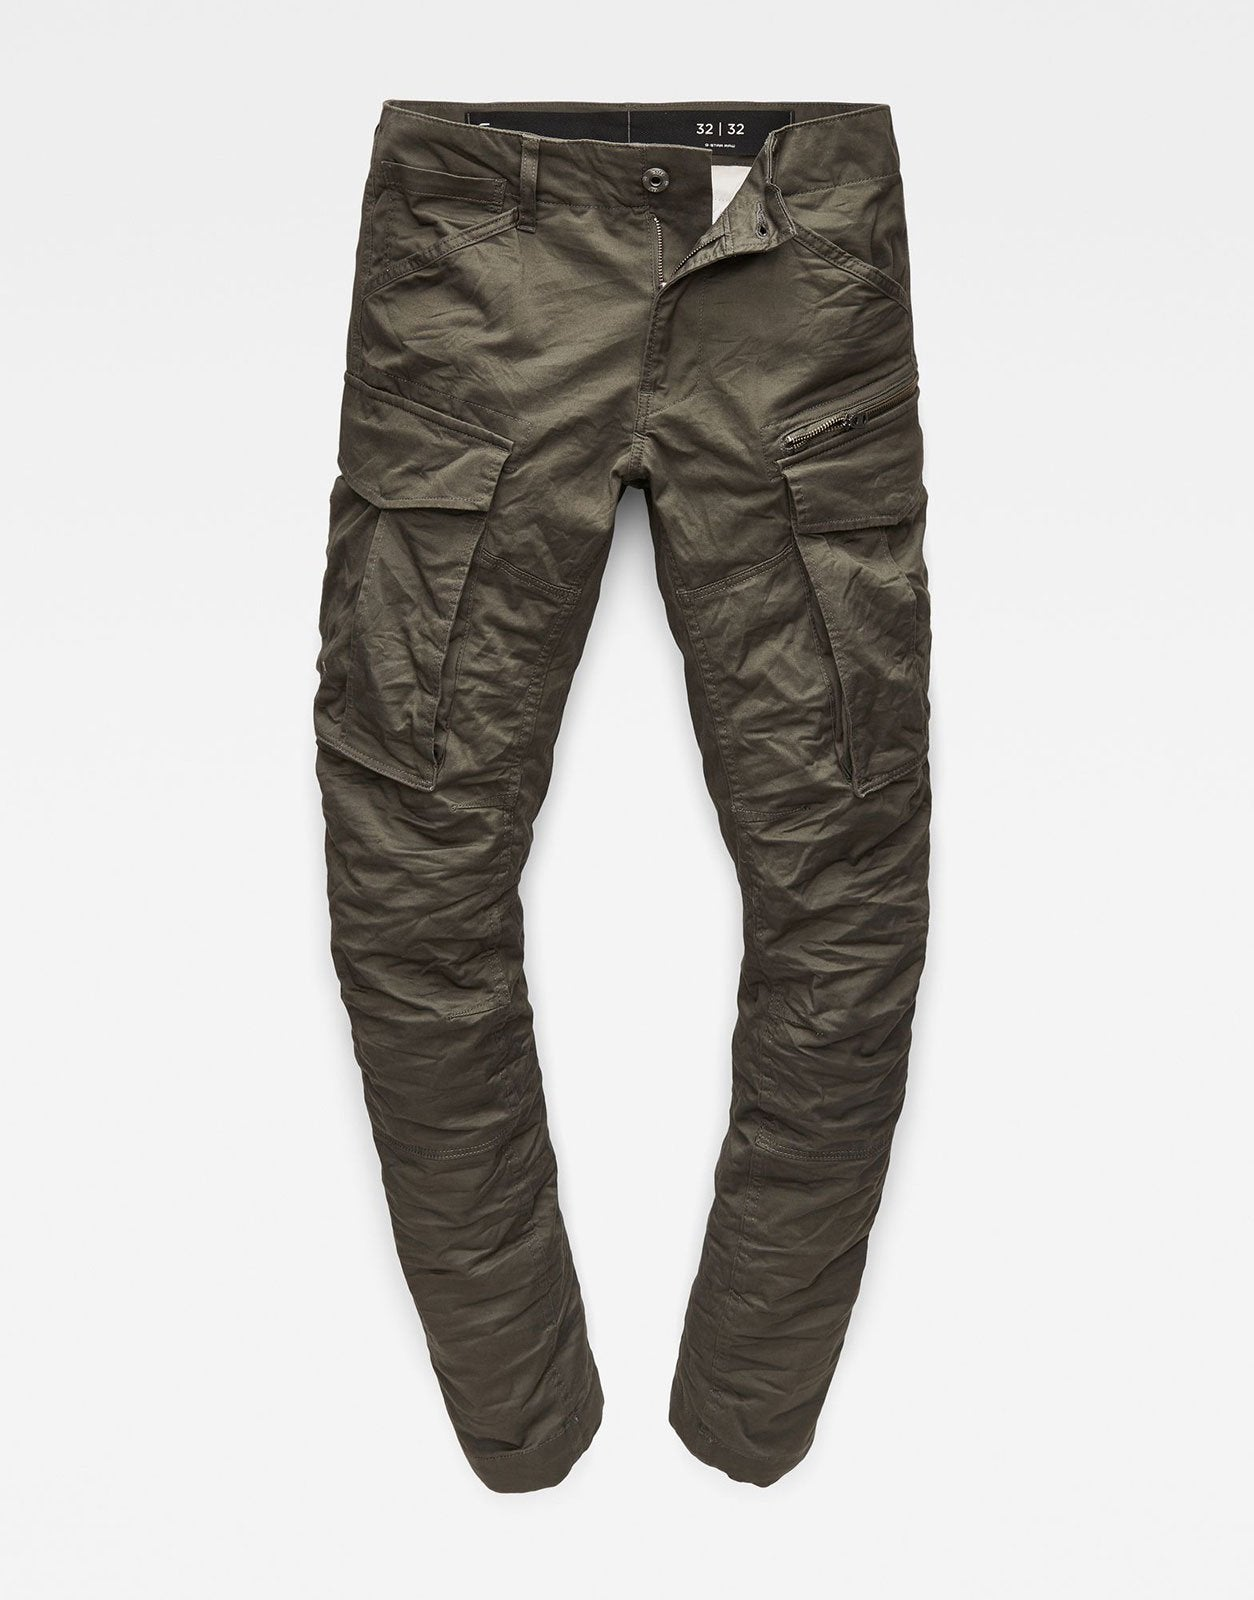 save up to 60% clear-cut texture online for sale G-Star RAW Rovic Cargo